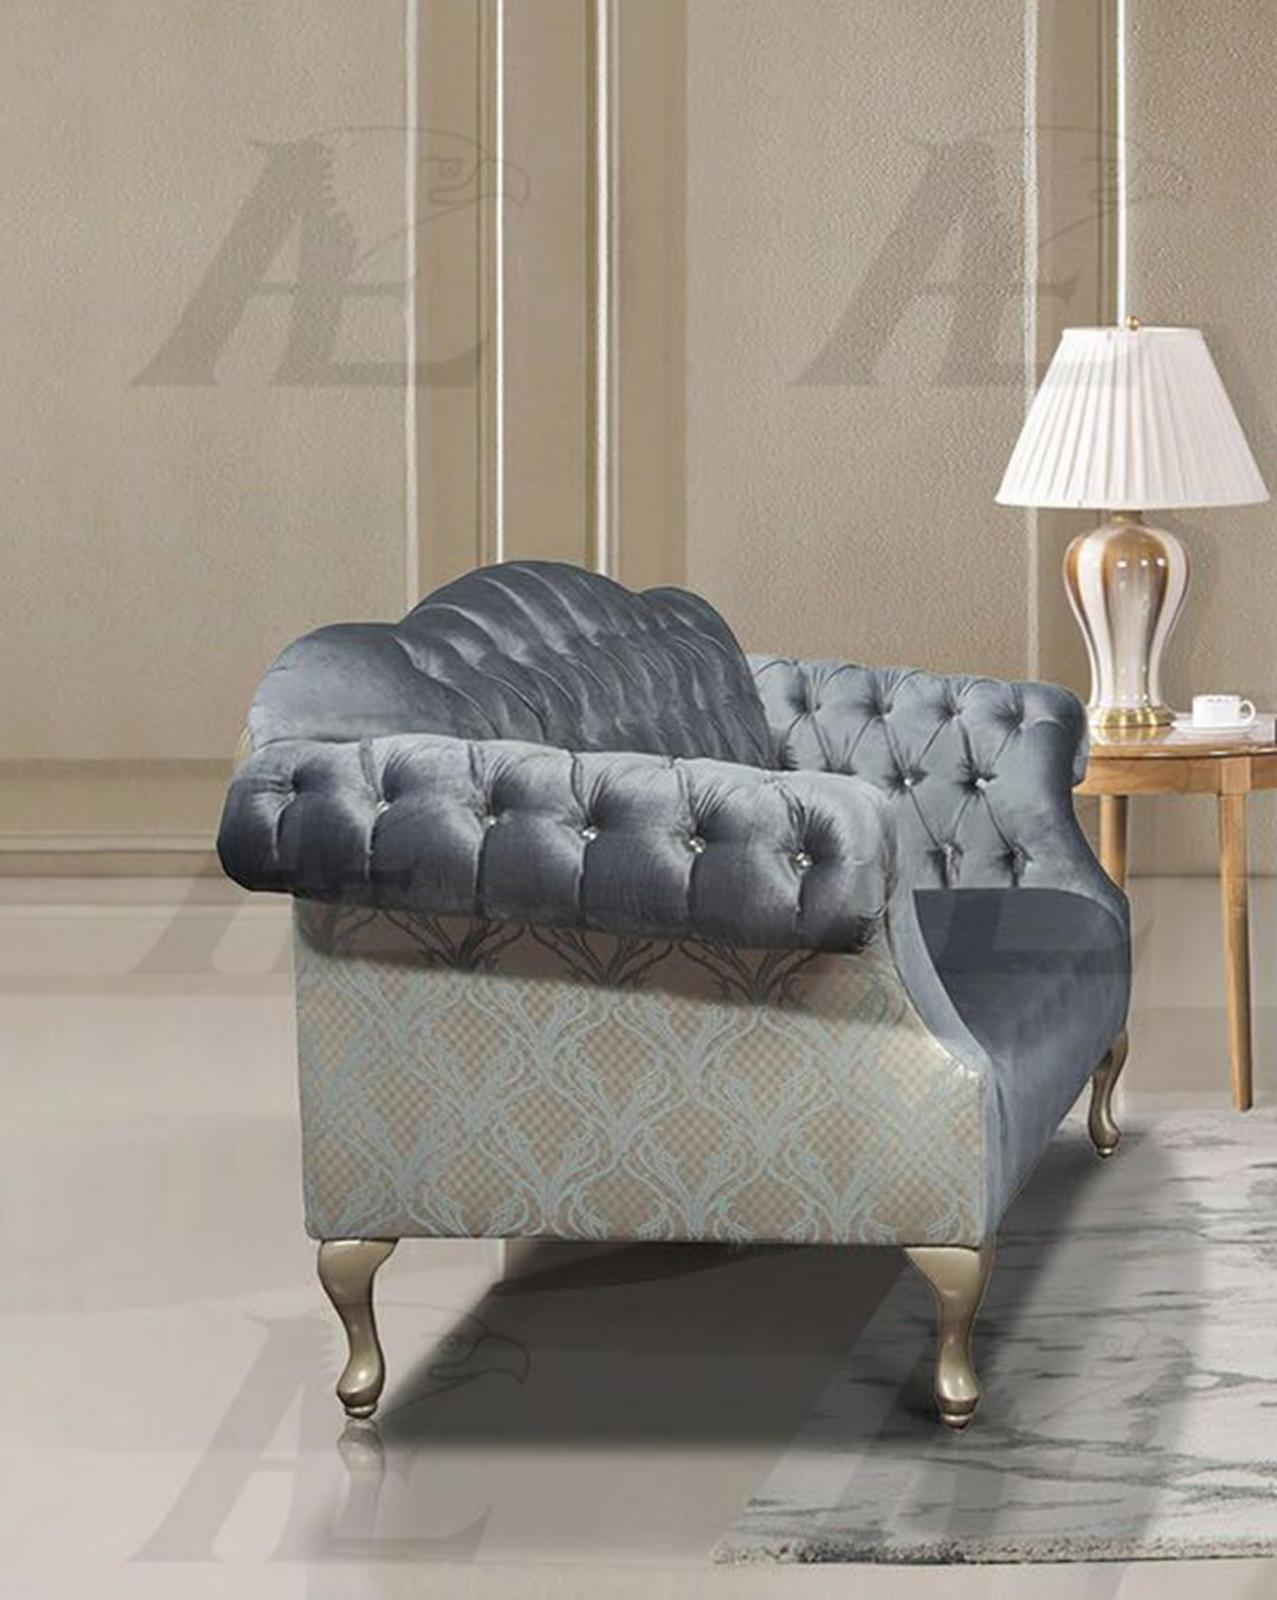 American eagle ae2603 lb light blue tufted sofa and for Tufted couch set